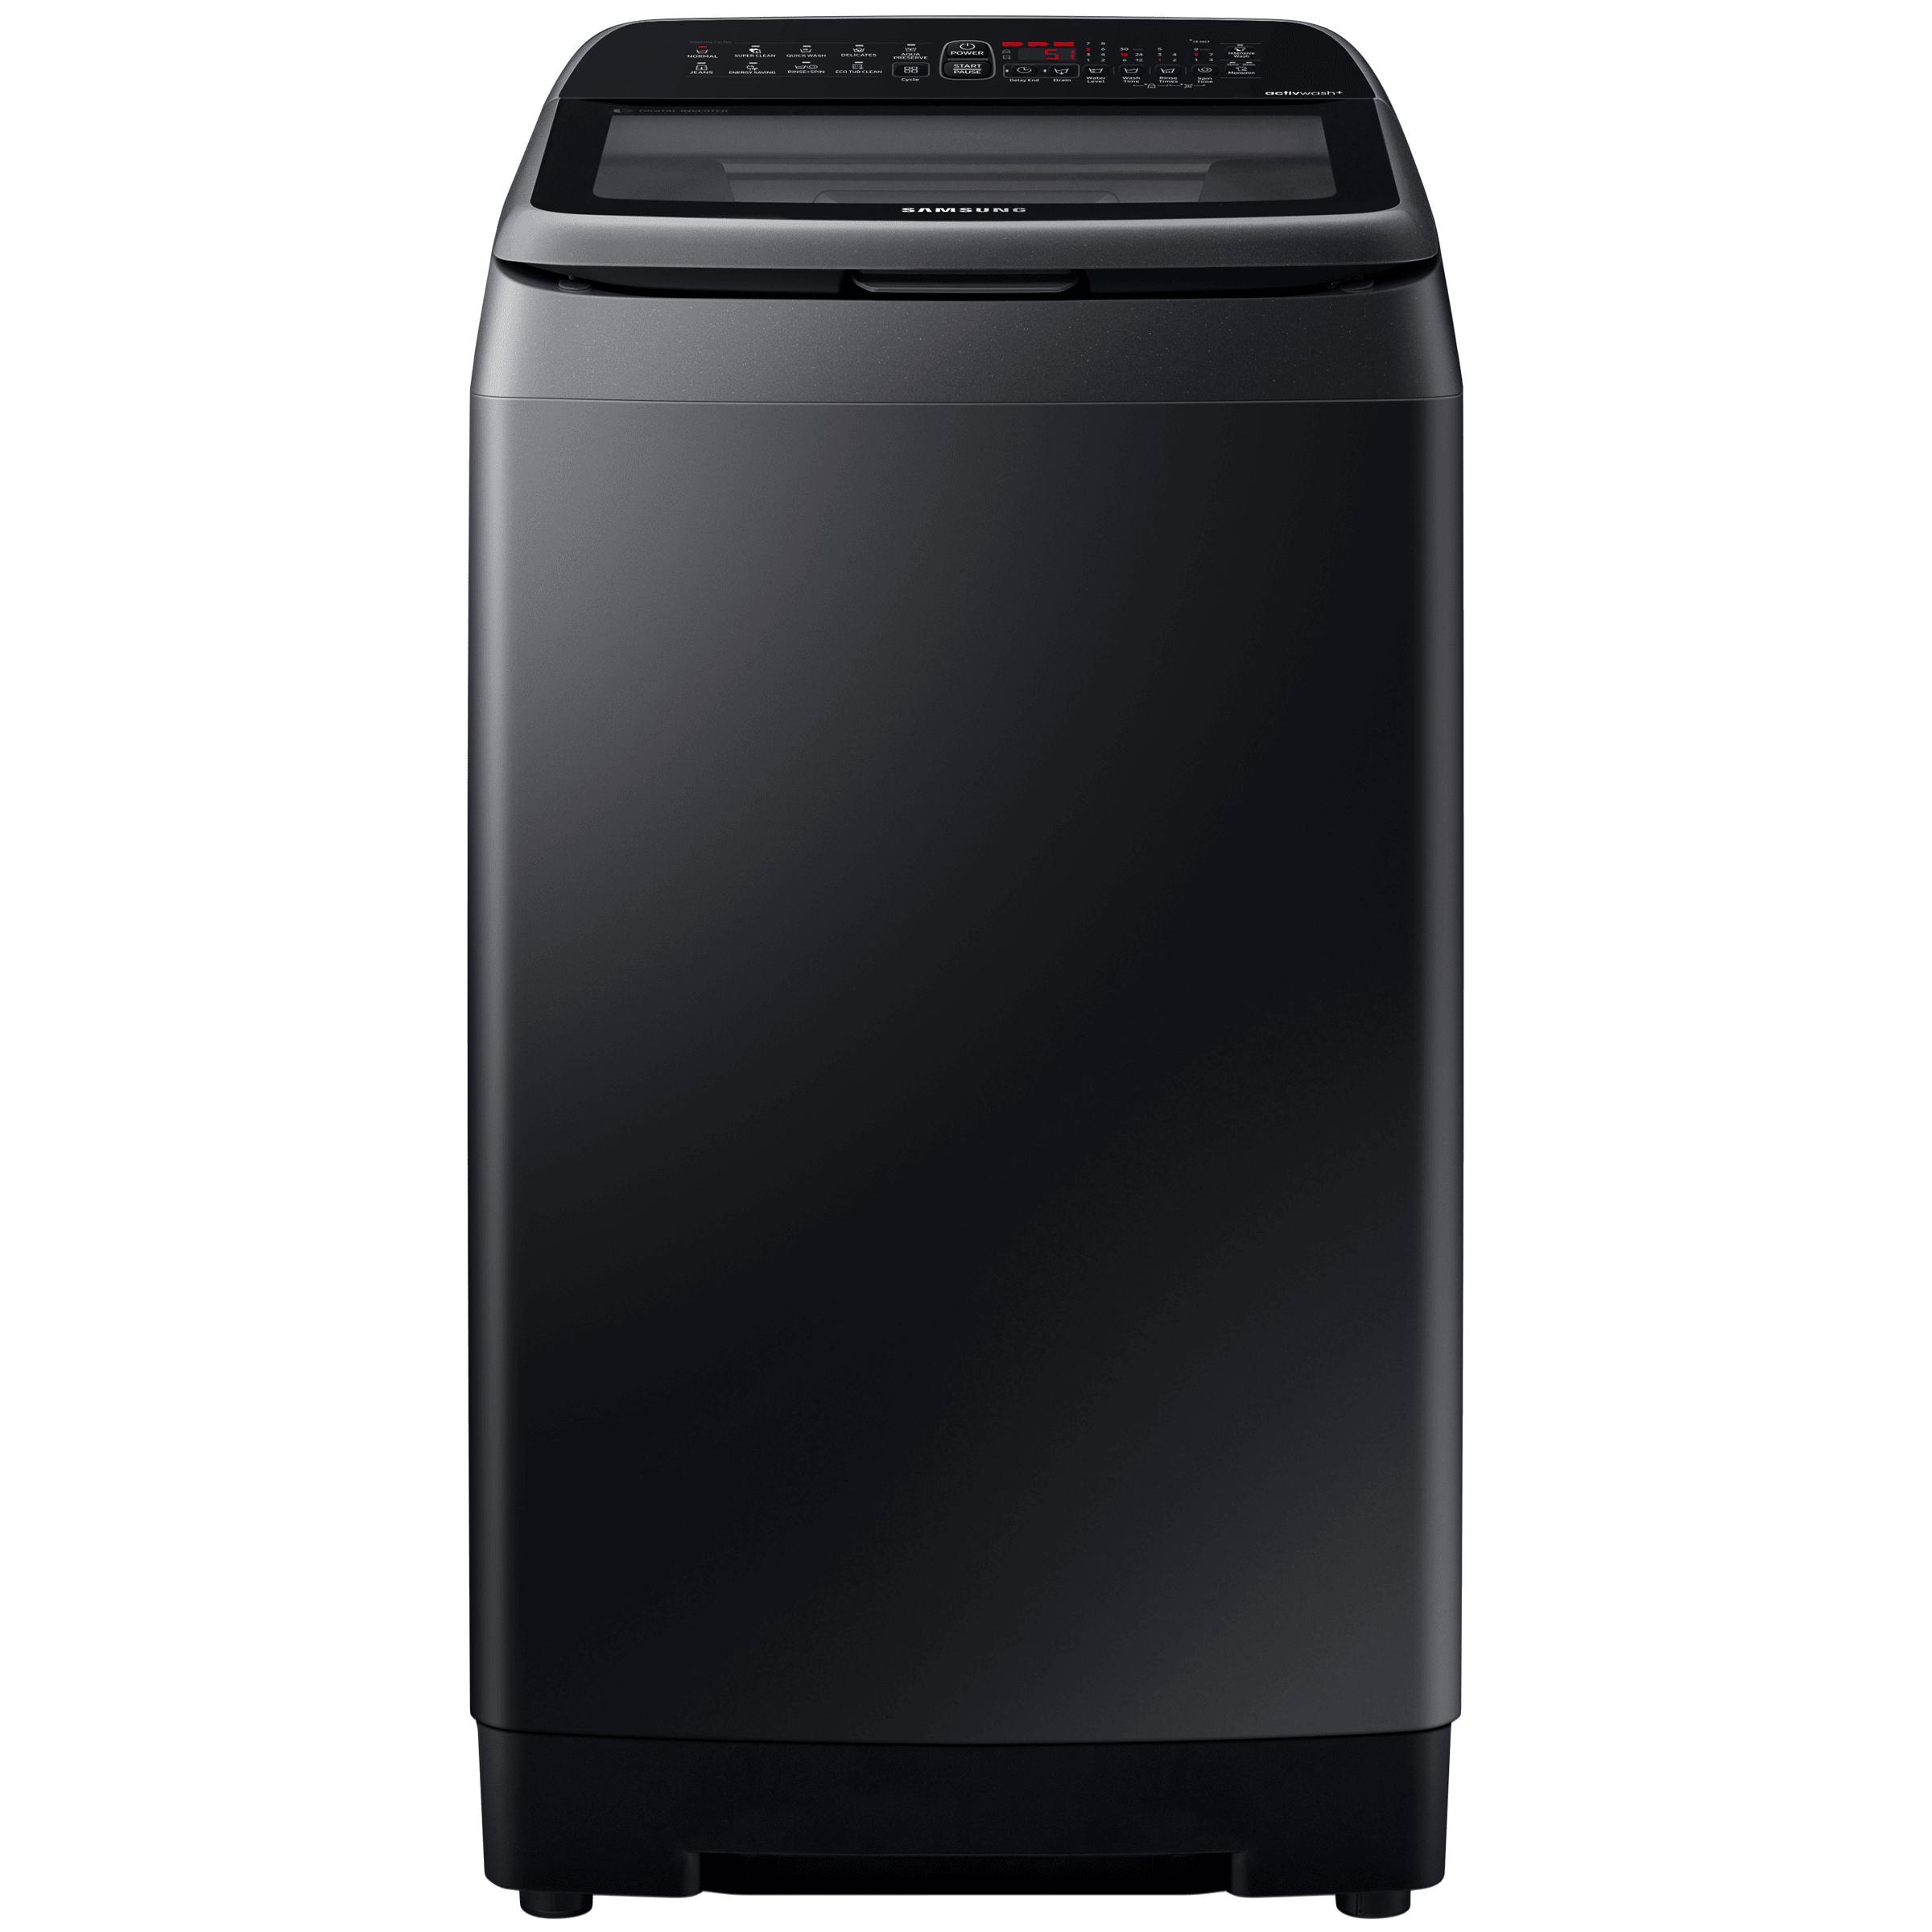 Samsung 8 kg 5 Star Fully Automatic Top Load Washing Machine (Inverter Technology, WA80N4770VV/TL, Black Caviar)